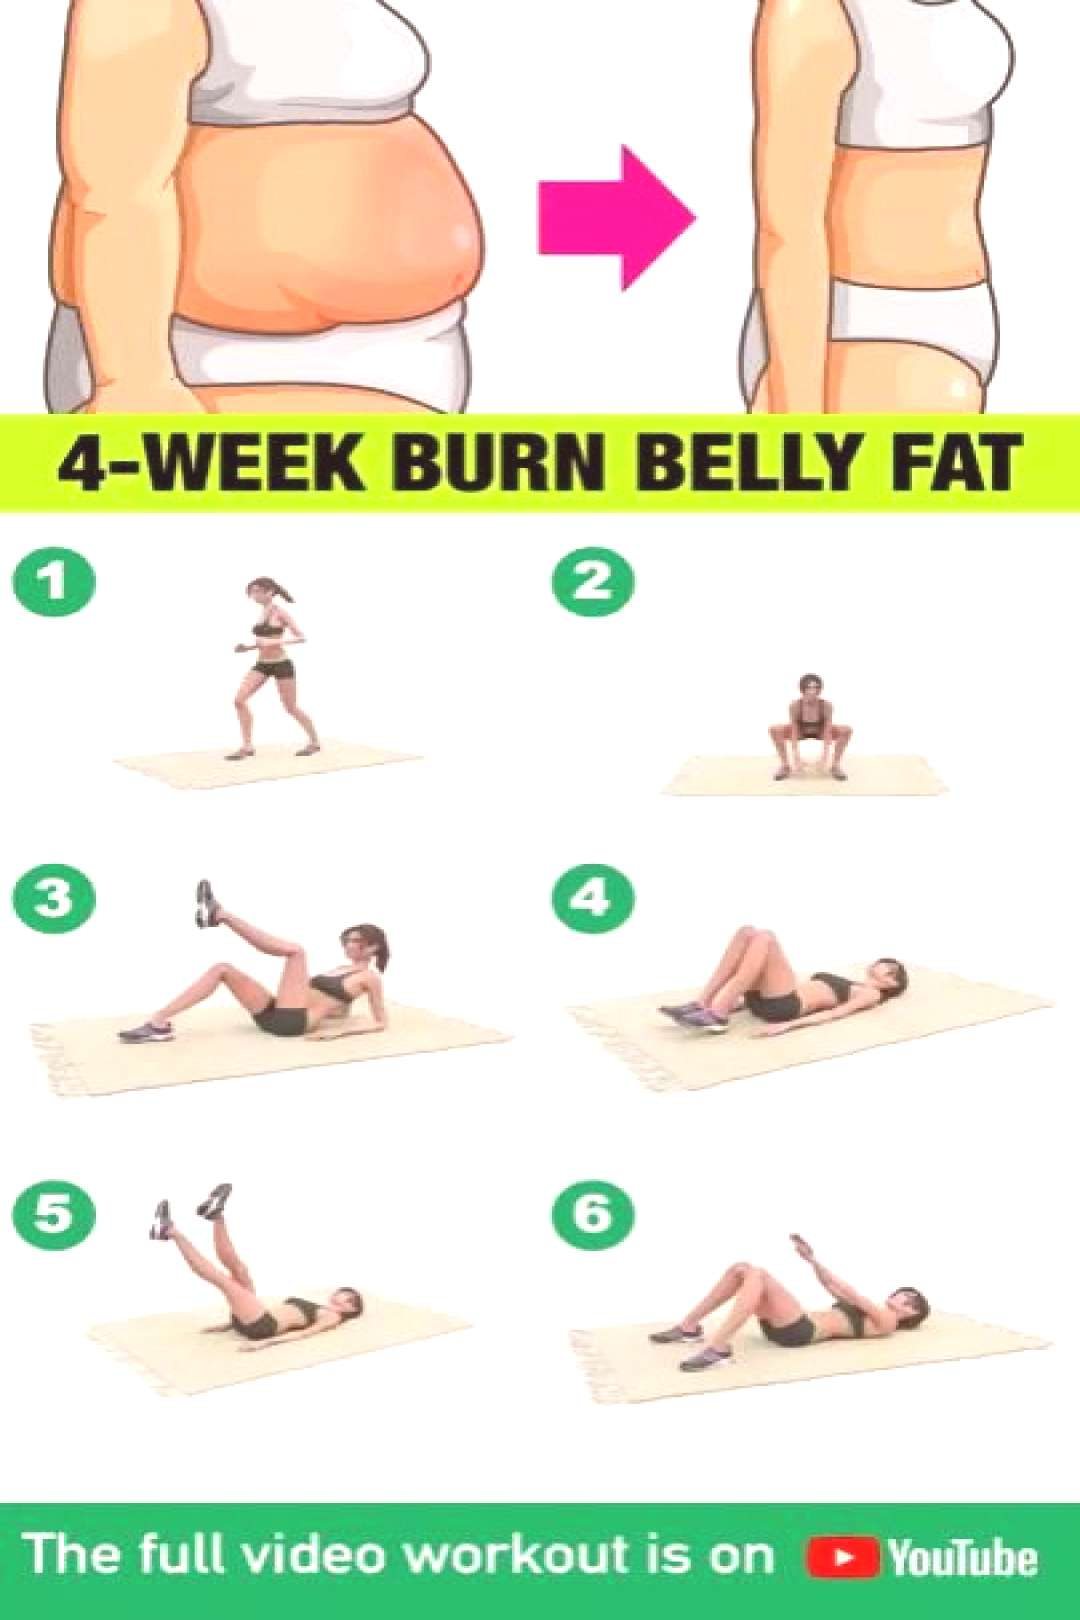 Morning Ab Workouts Fitness Training Videos